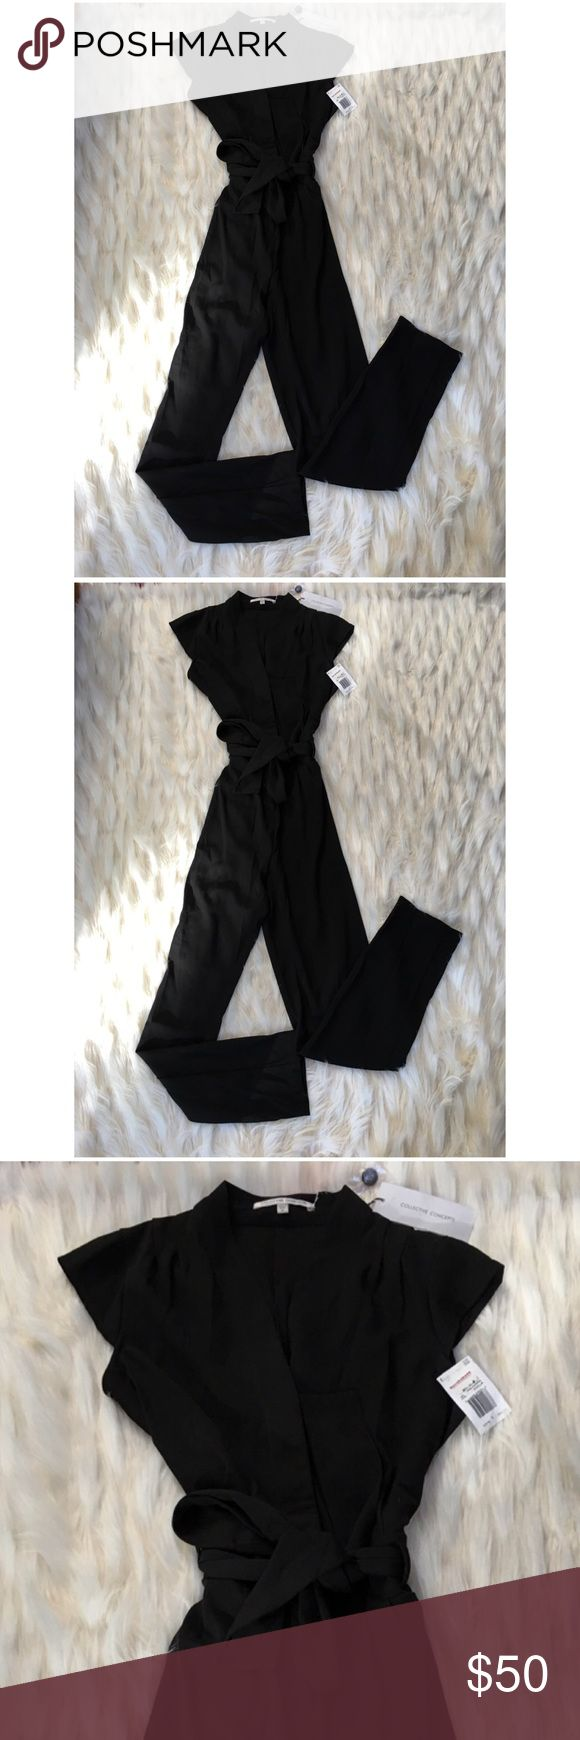 NWT black romper with tie belt Beautiful high quality black romper with cap sleeves and button front/tie belt. Macy's Tags attached. Collective Concepts Other